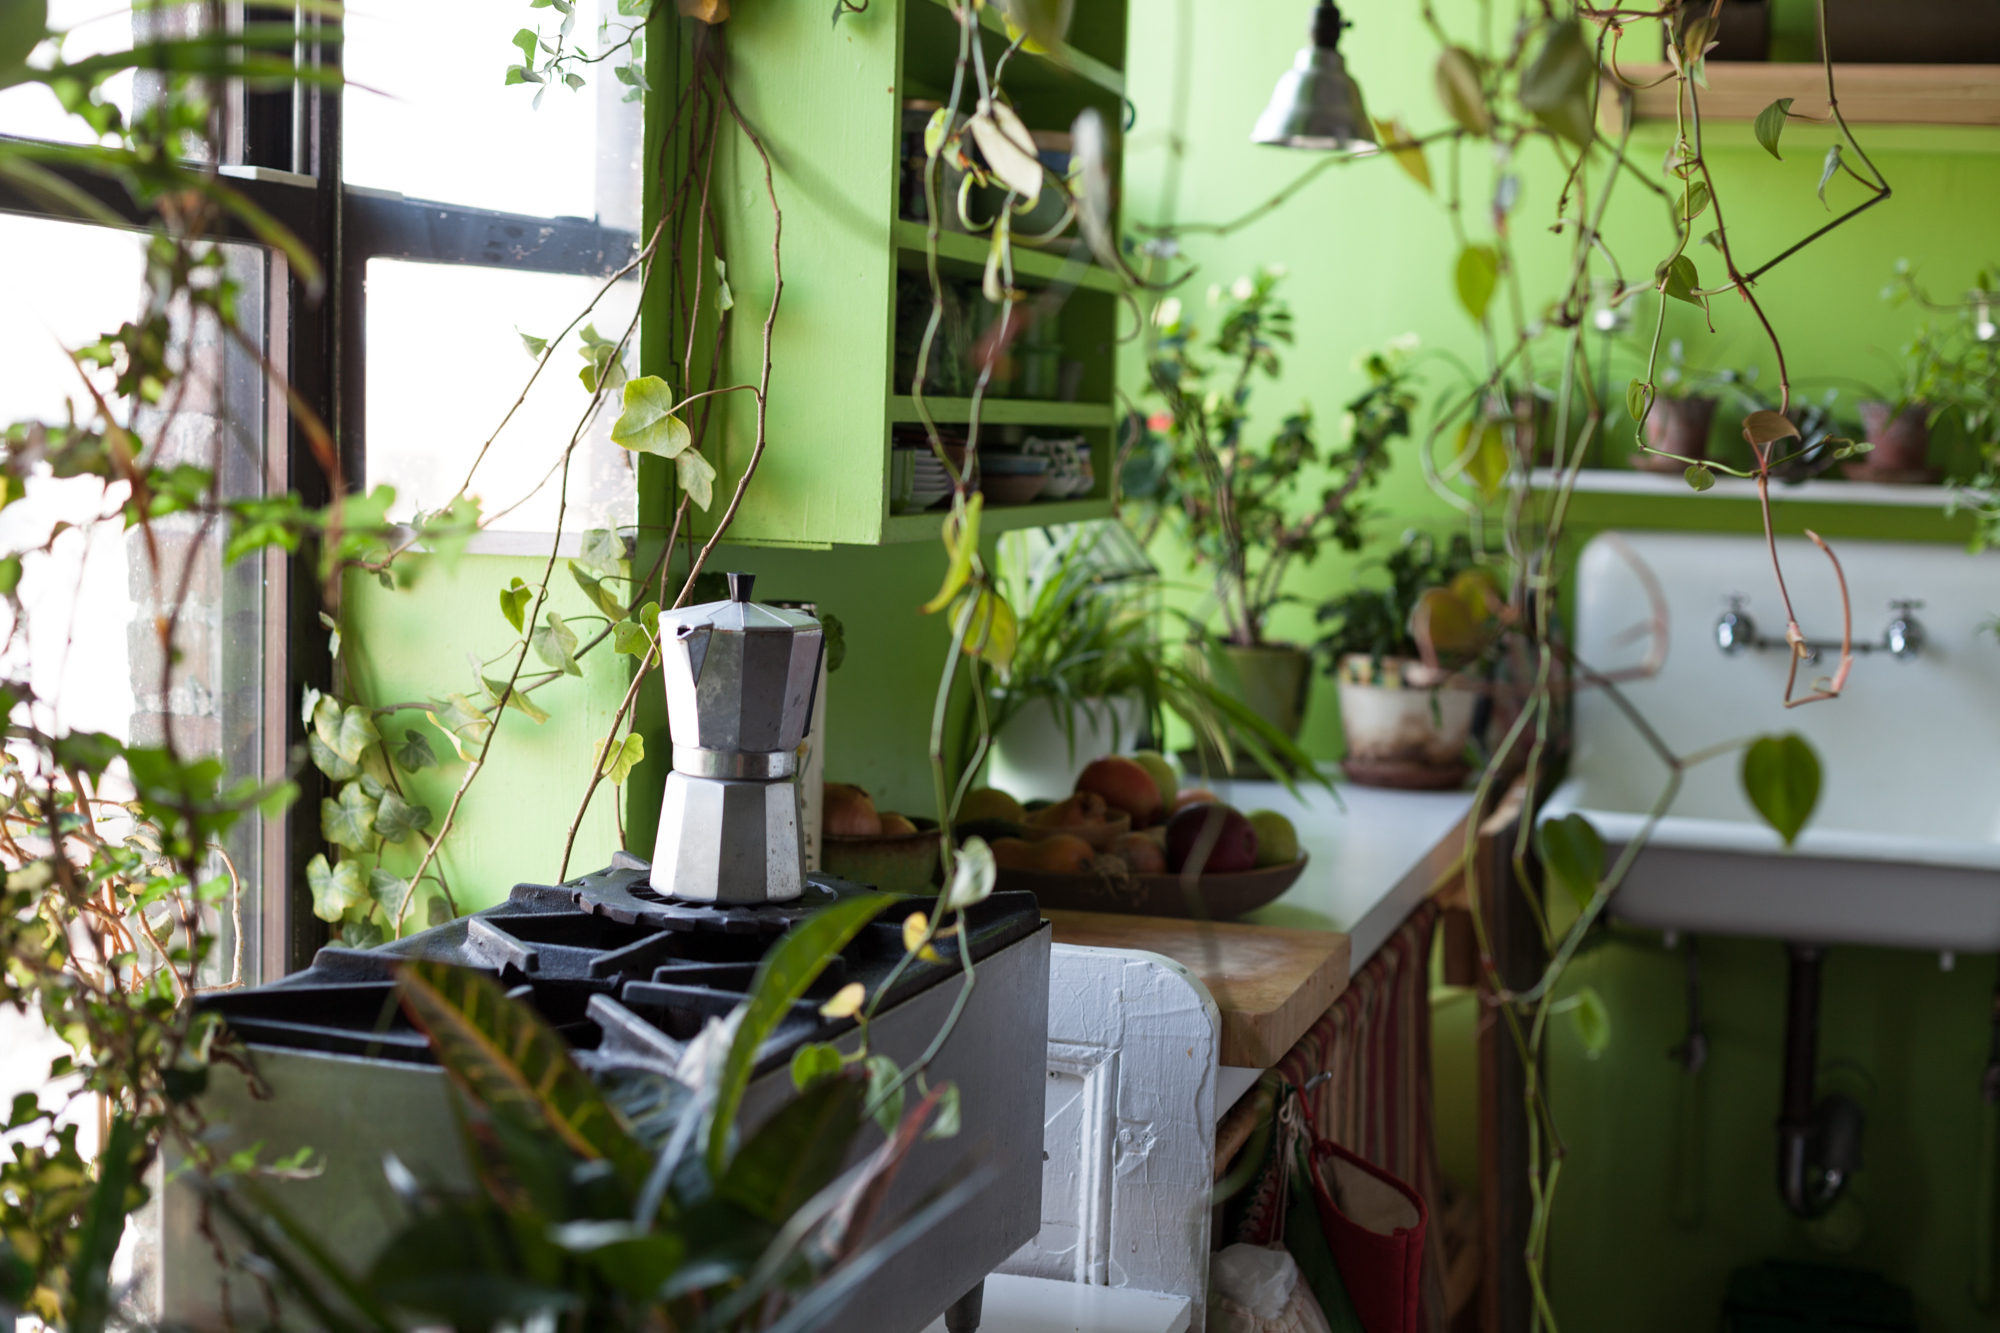 My ivy and philodendrons have been in my drafty, north-facing windows for over five years now and have shown no sign of distress. This tells me that they're okay with drafty conditions in winter.